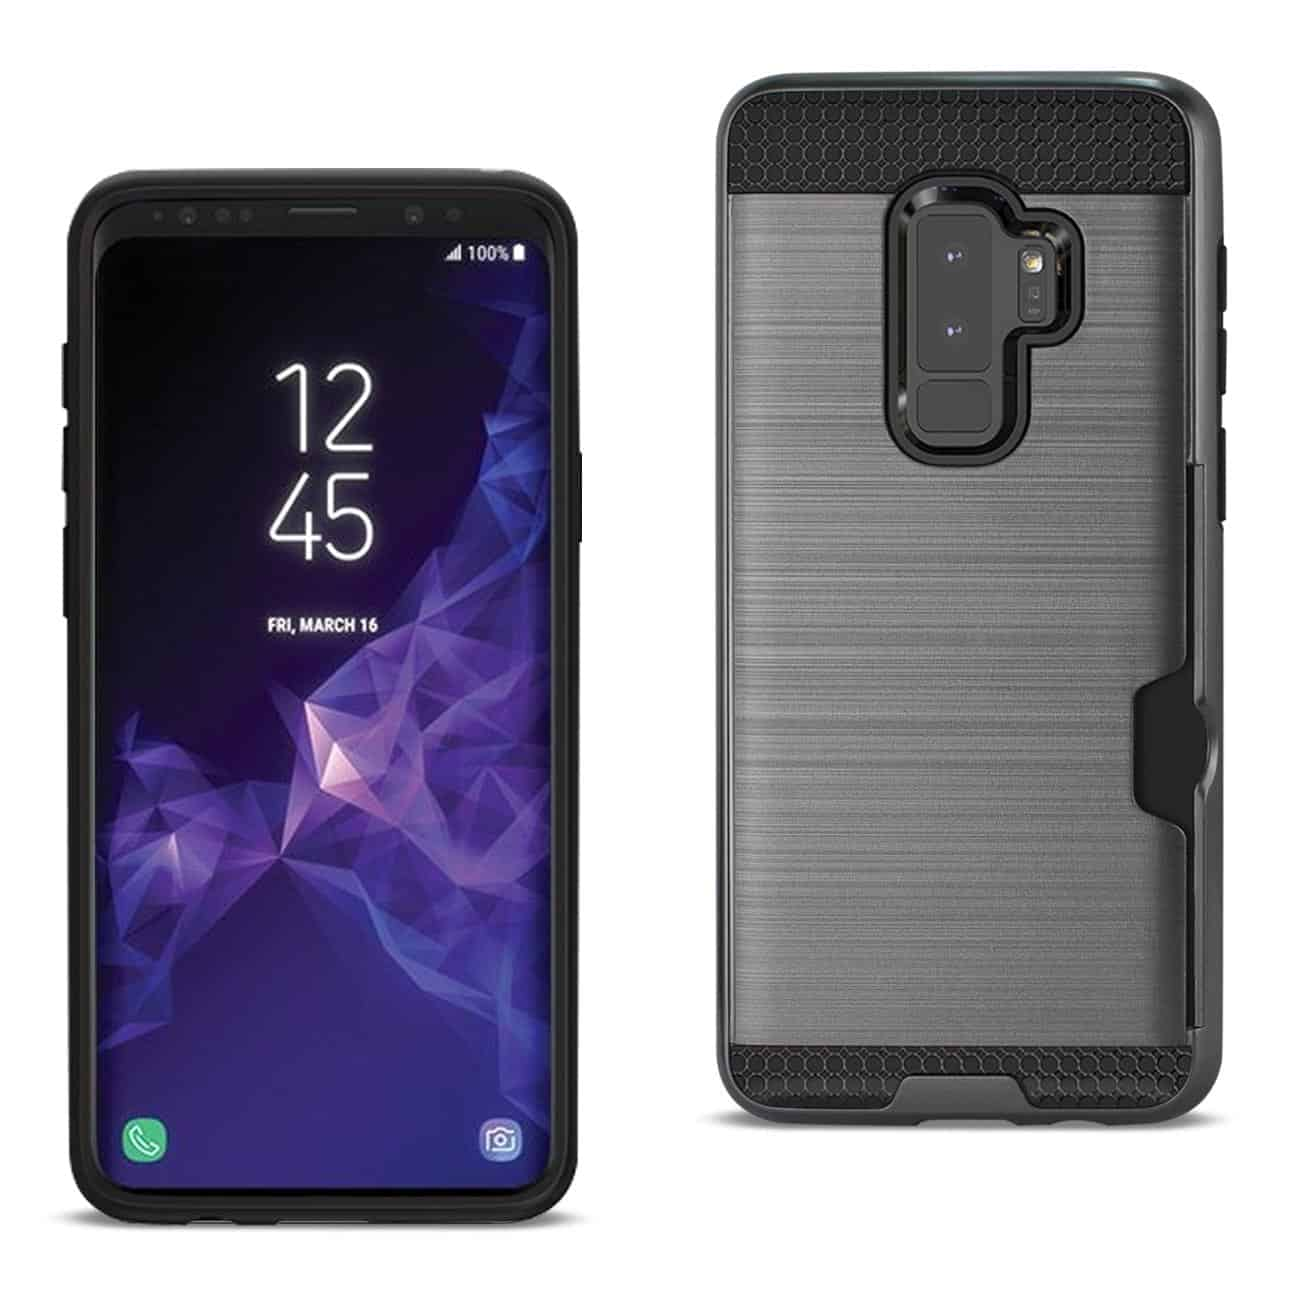 Samsung Galaxy S9 Plus Slim Armor Hybrid Case With Card Holder In Gray